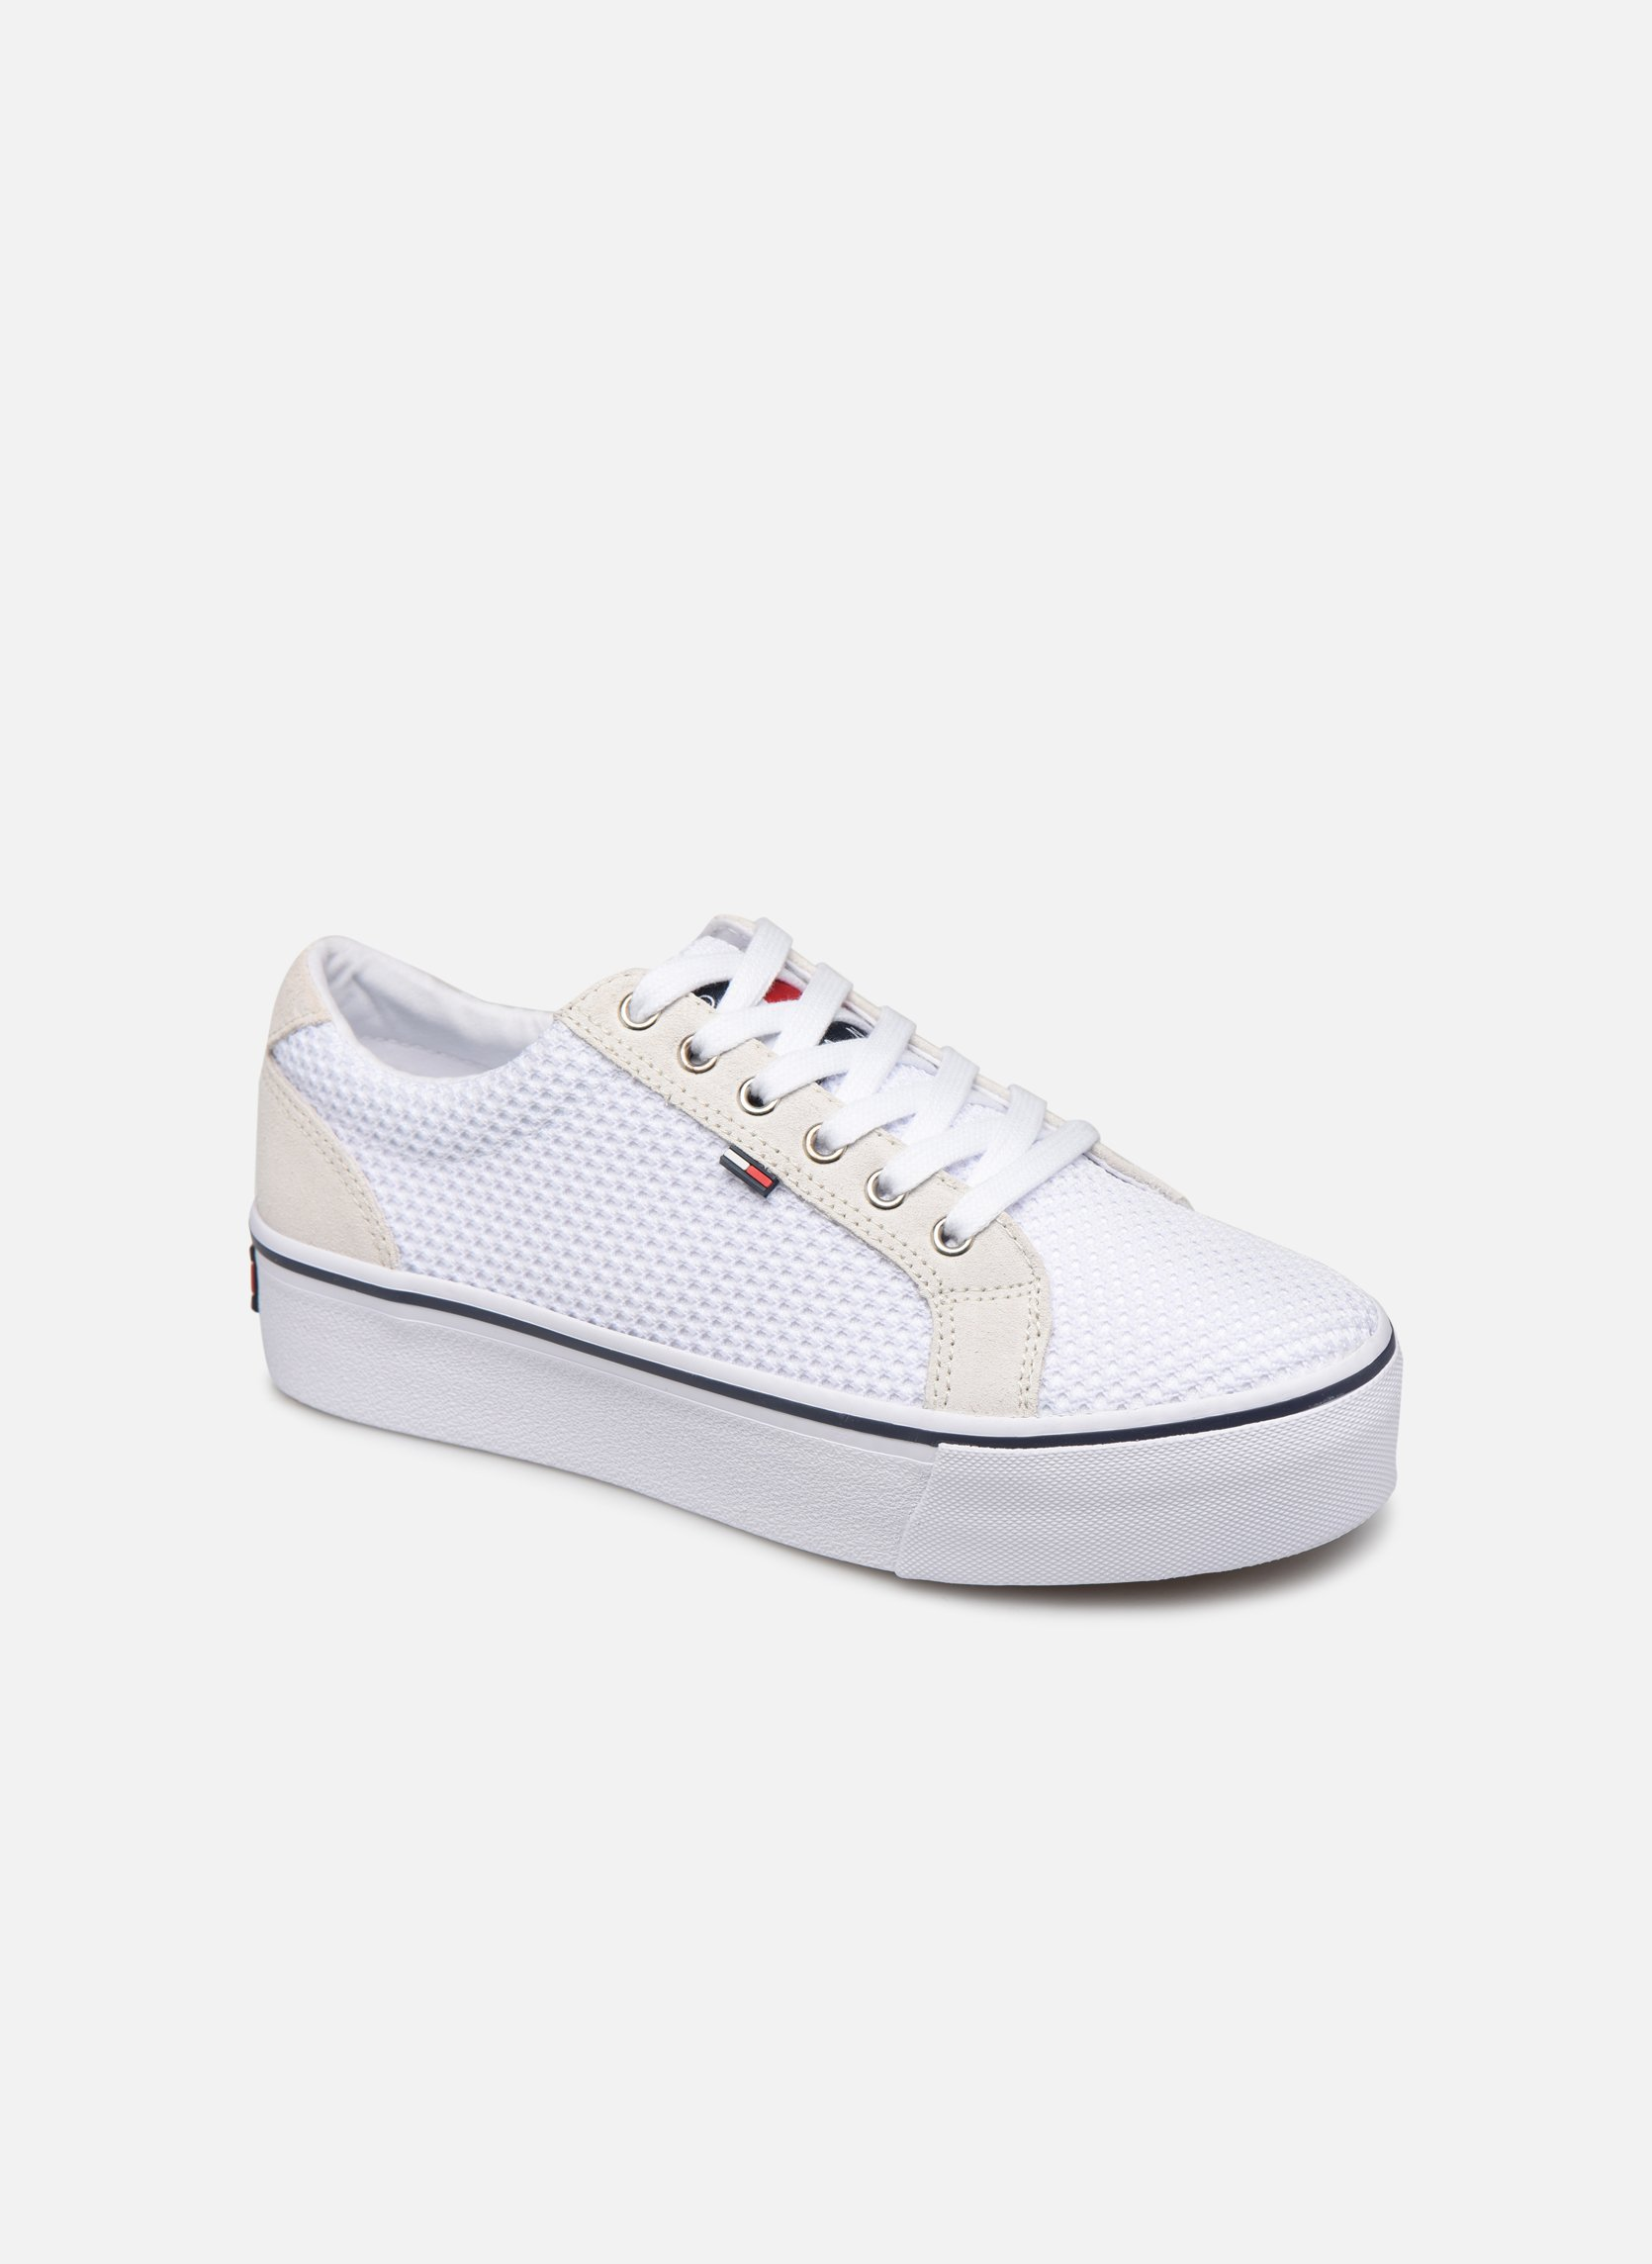 Sneakers WMN TEXTILE CITY SNEAKER by Tommy Hilfiger